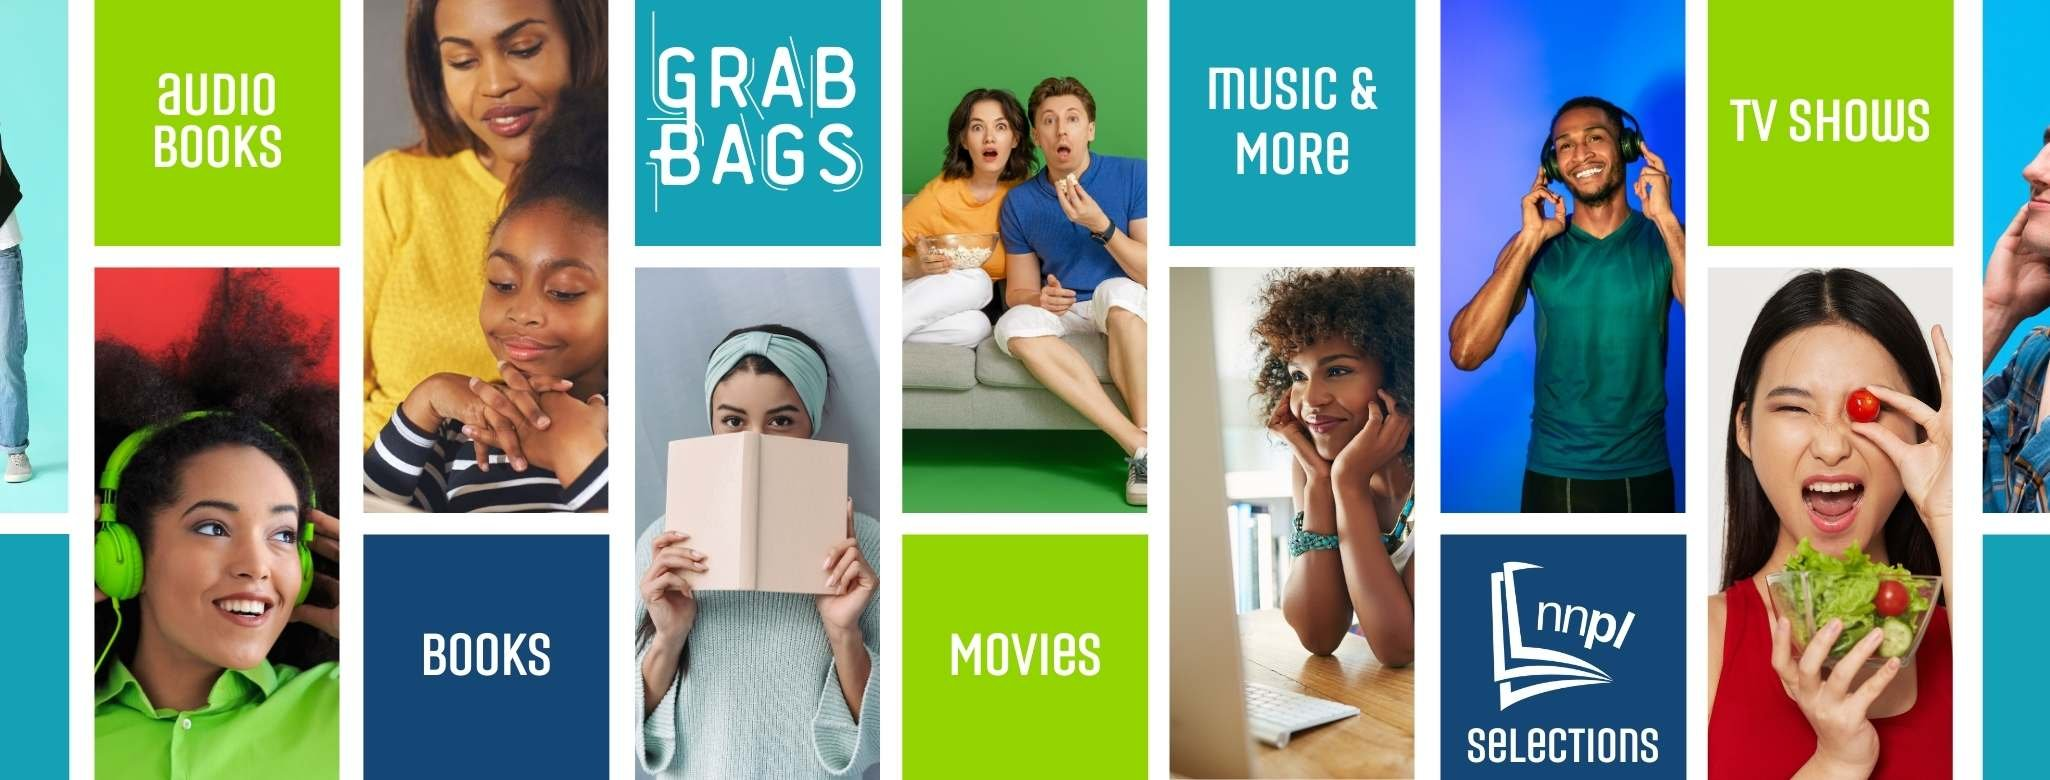 Library Grab Bags Form